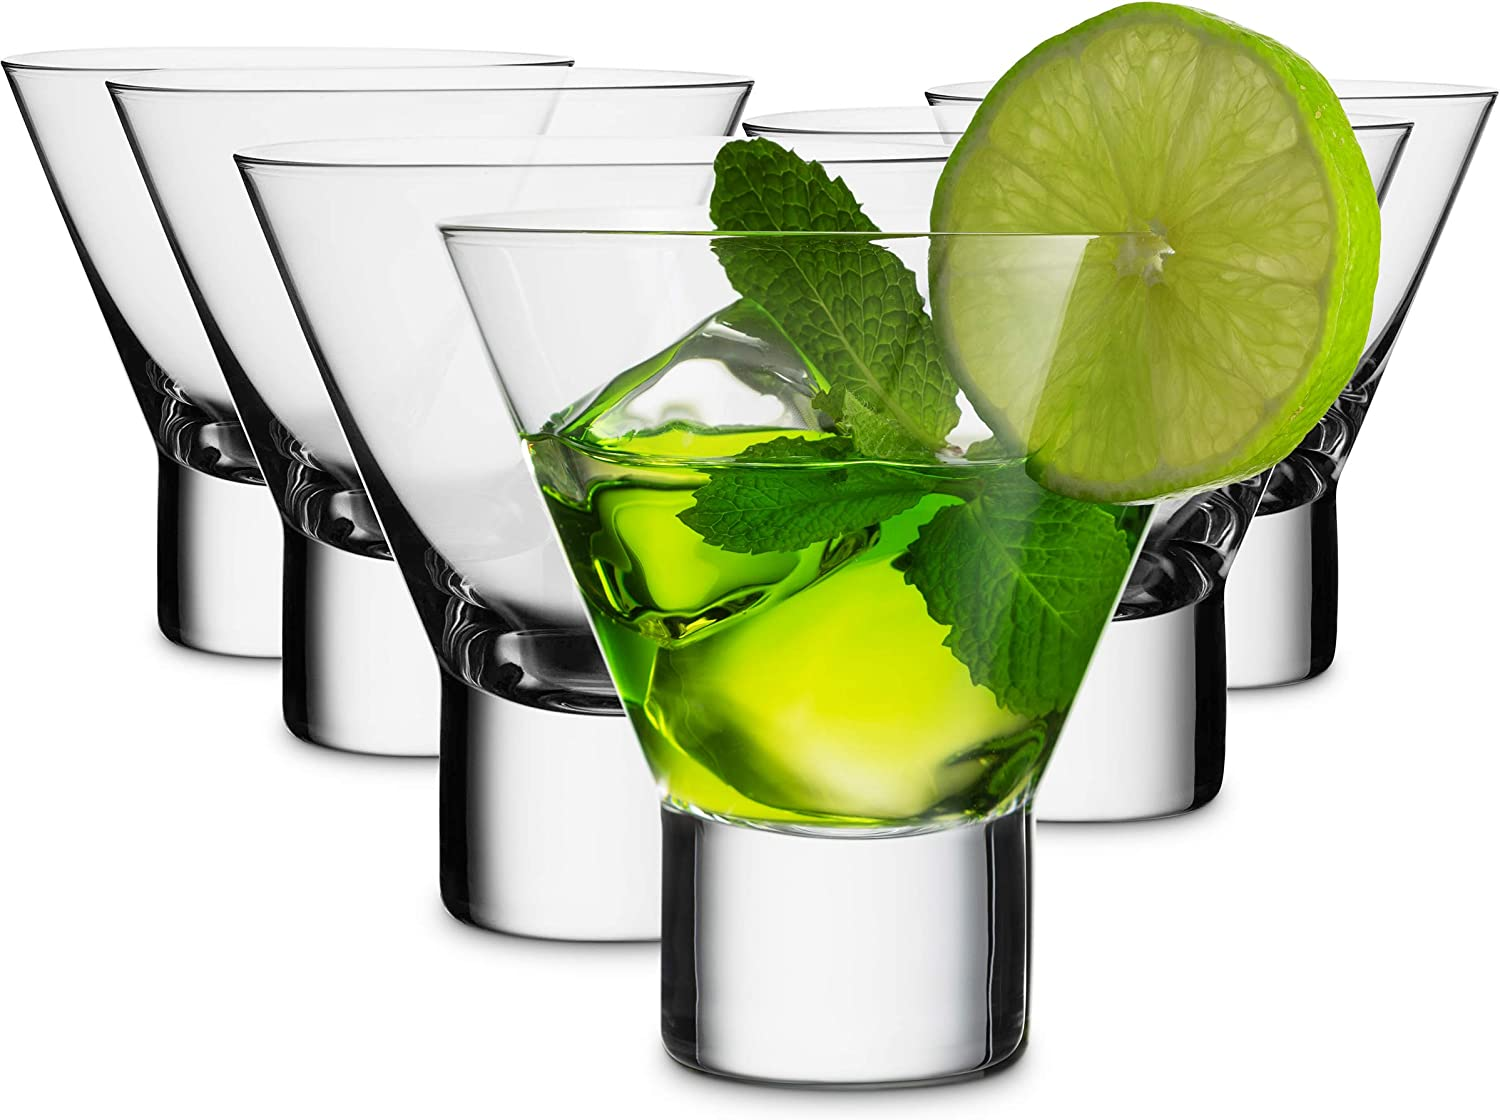 Mitbak 8-Ounce Martini Glasses (Set of 6) | Elegant Lead Free Reusable cocktail Cups | Great for Martini, Cocktail, Whiskey, Liquor, Margarita, Hurricane & Other Alcoholic Beverages | Made In Slovakia